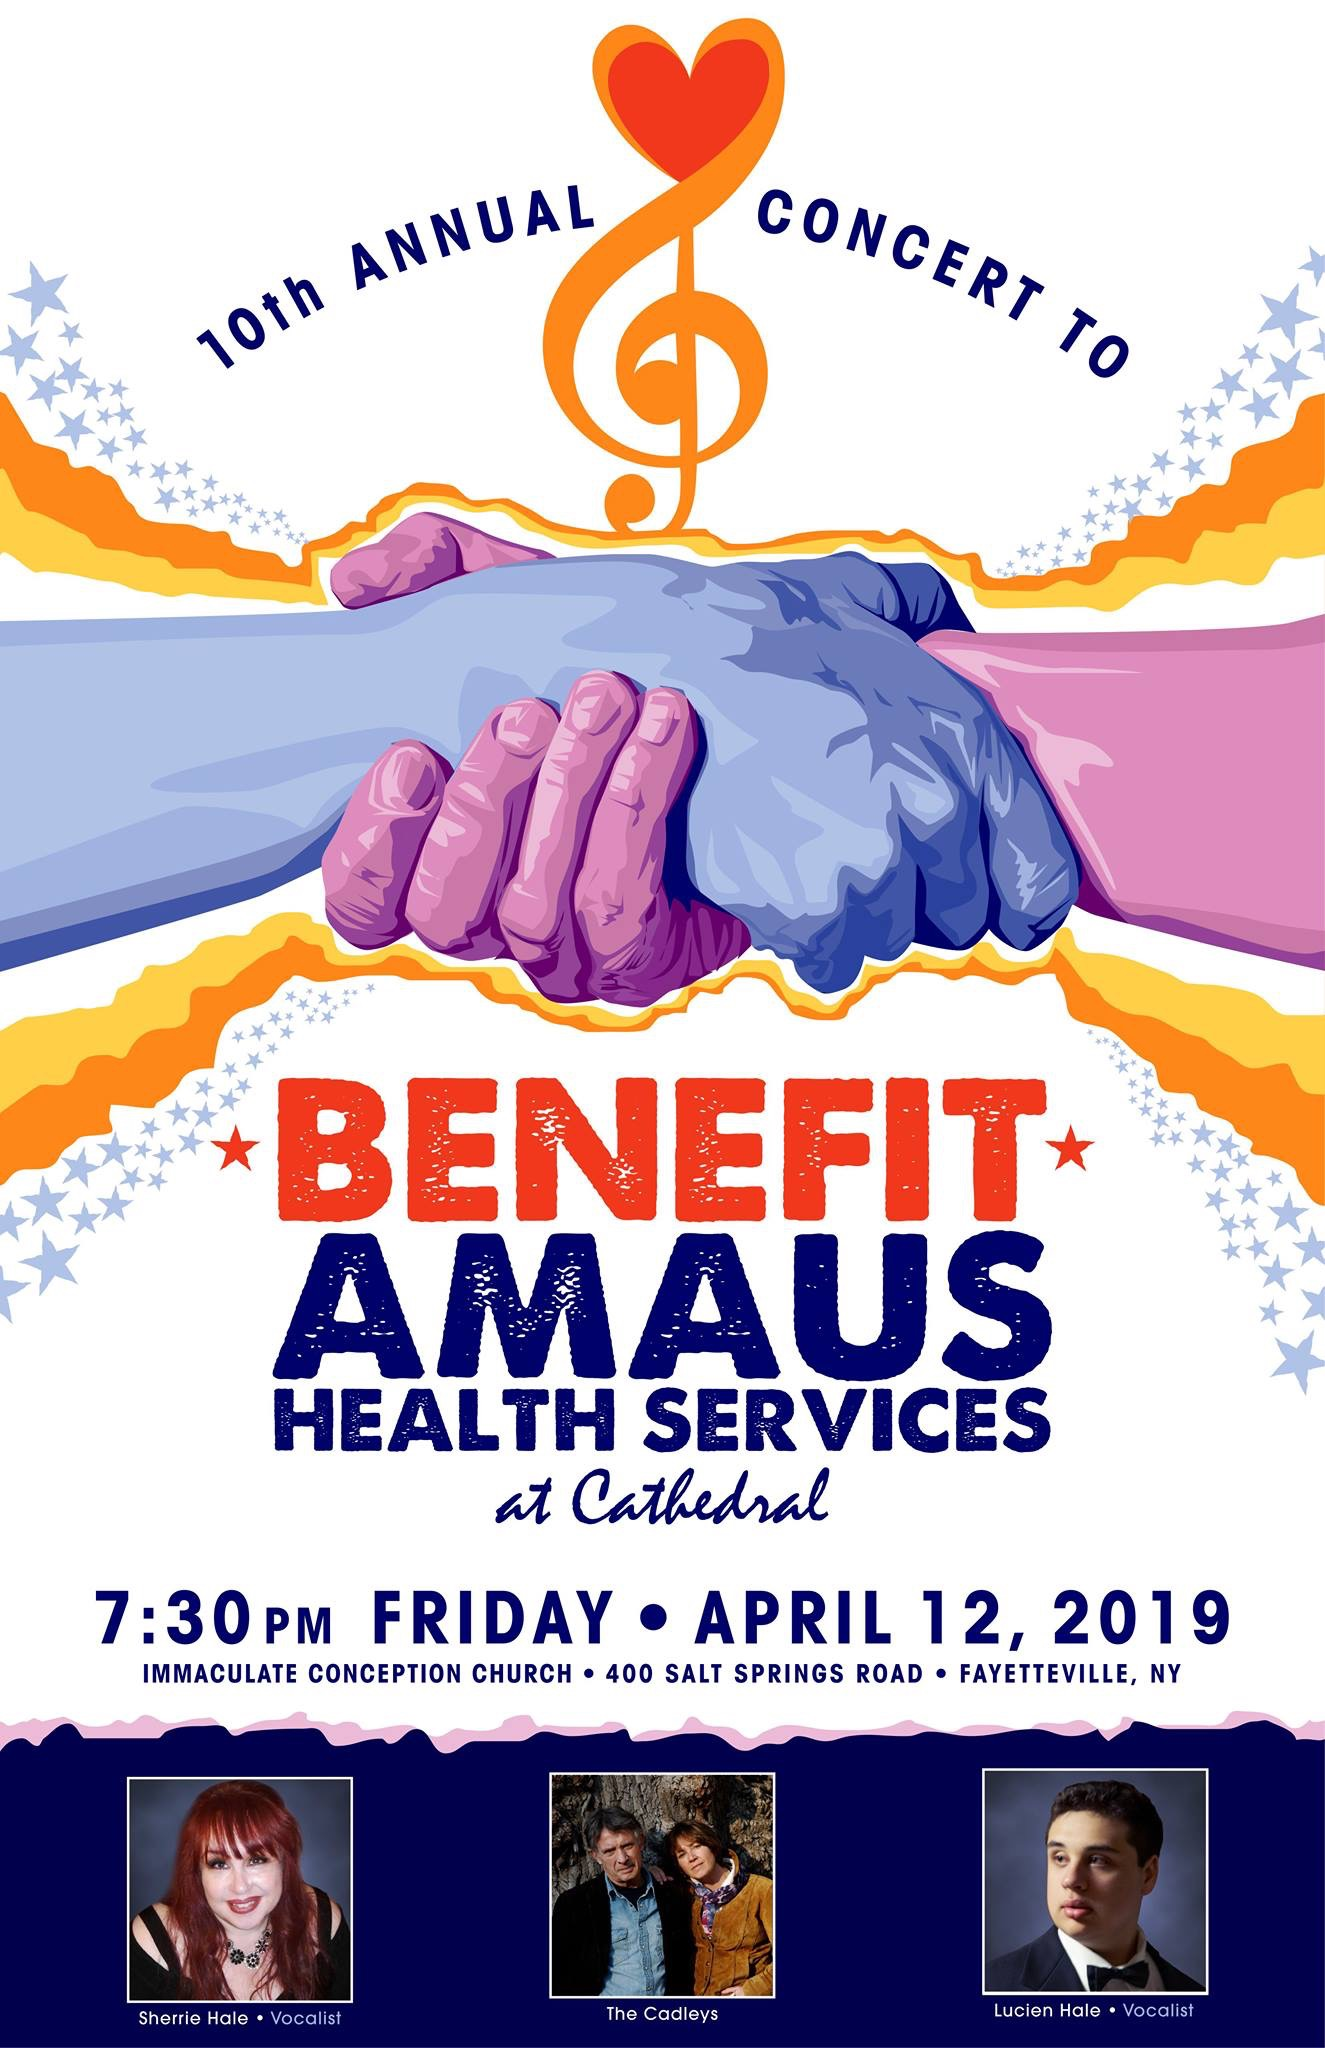 Annual Concert to Benefit AMAUS Health Services at